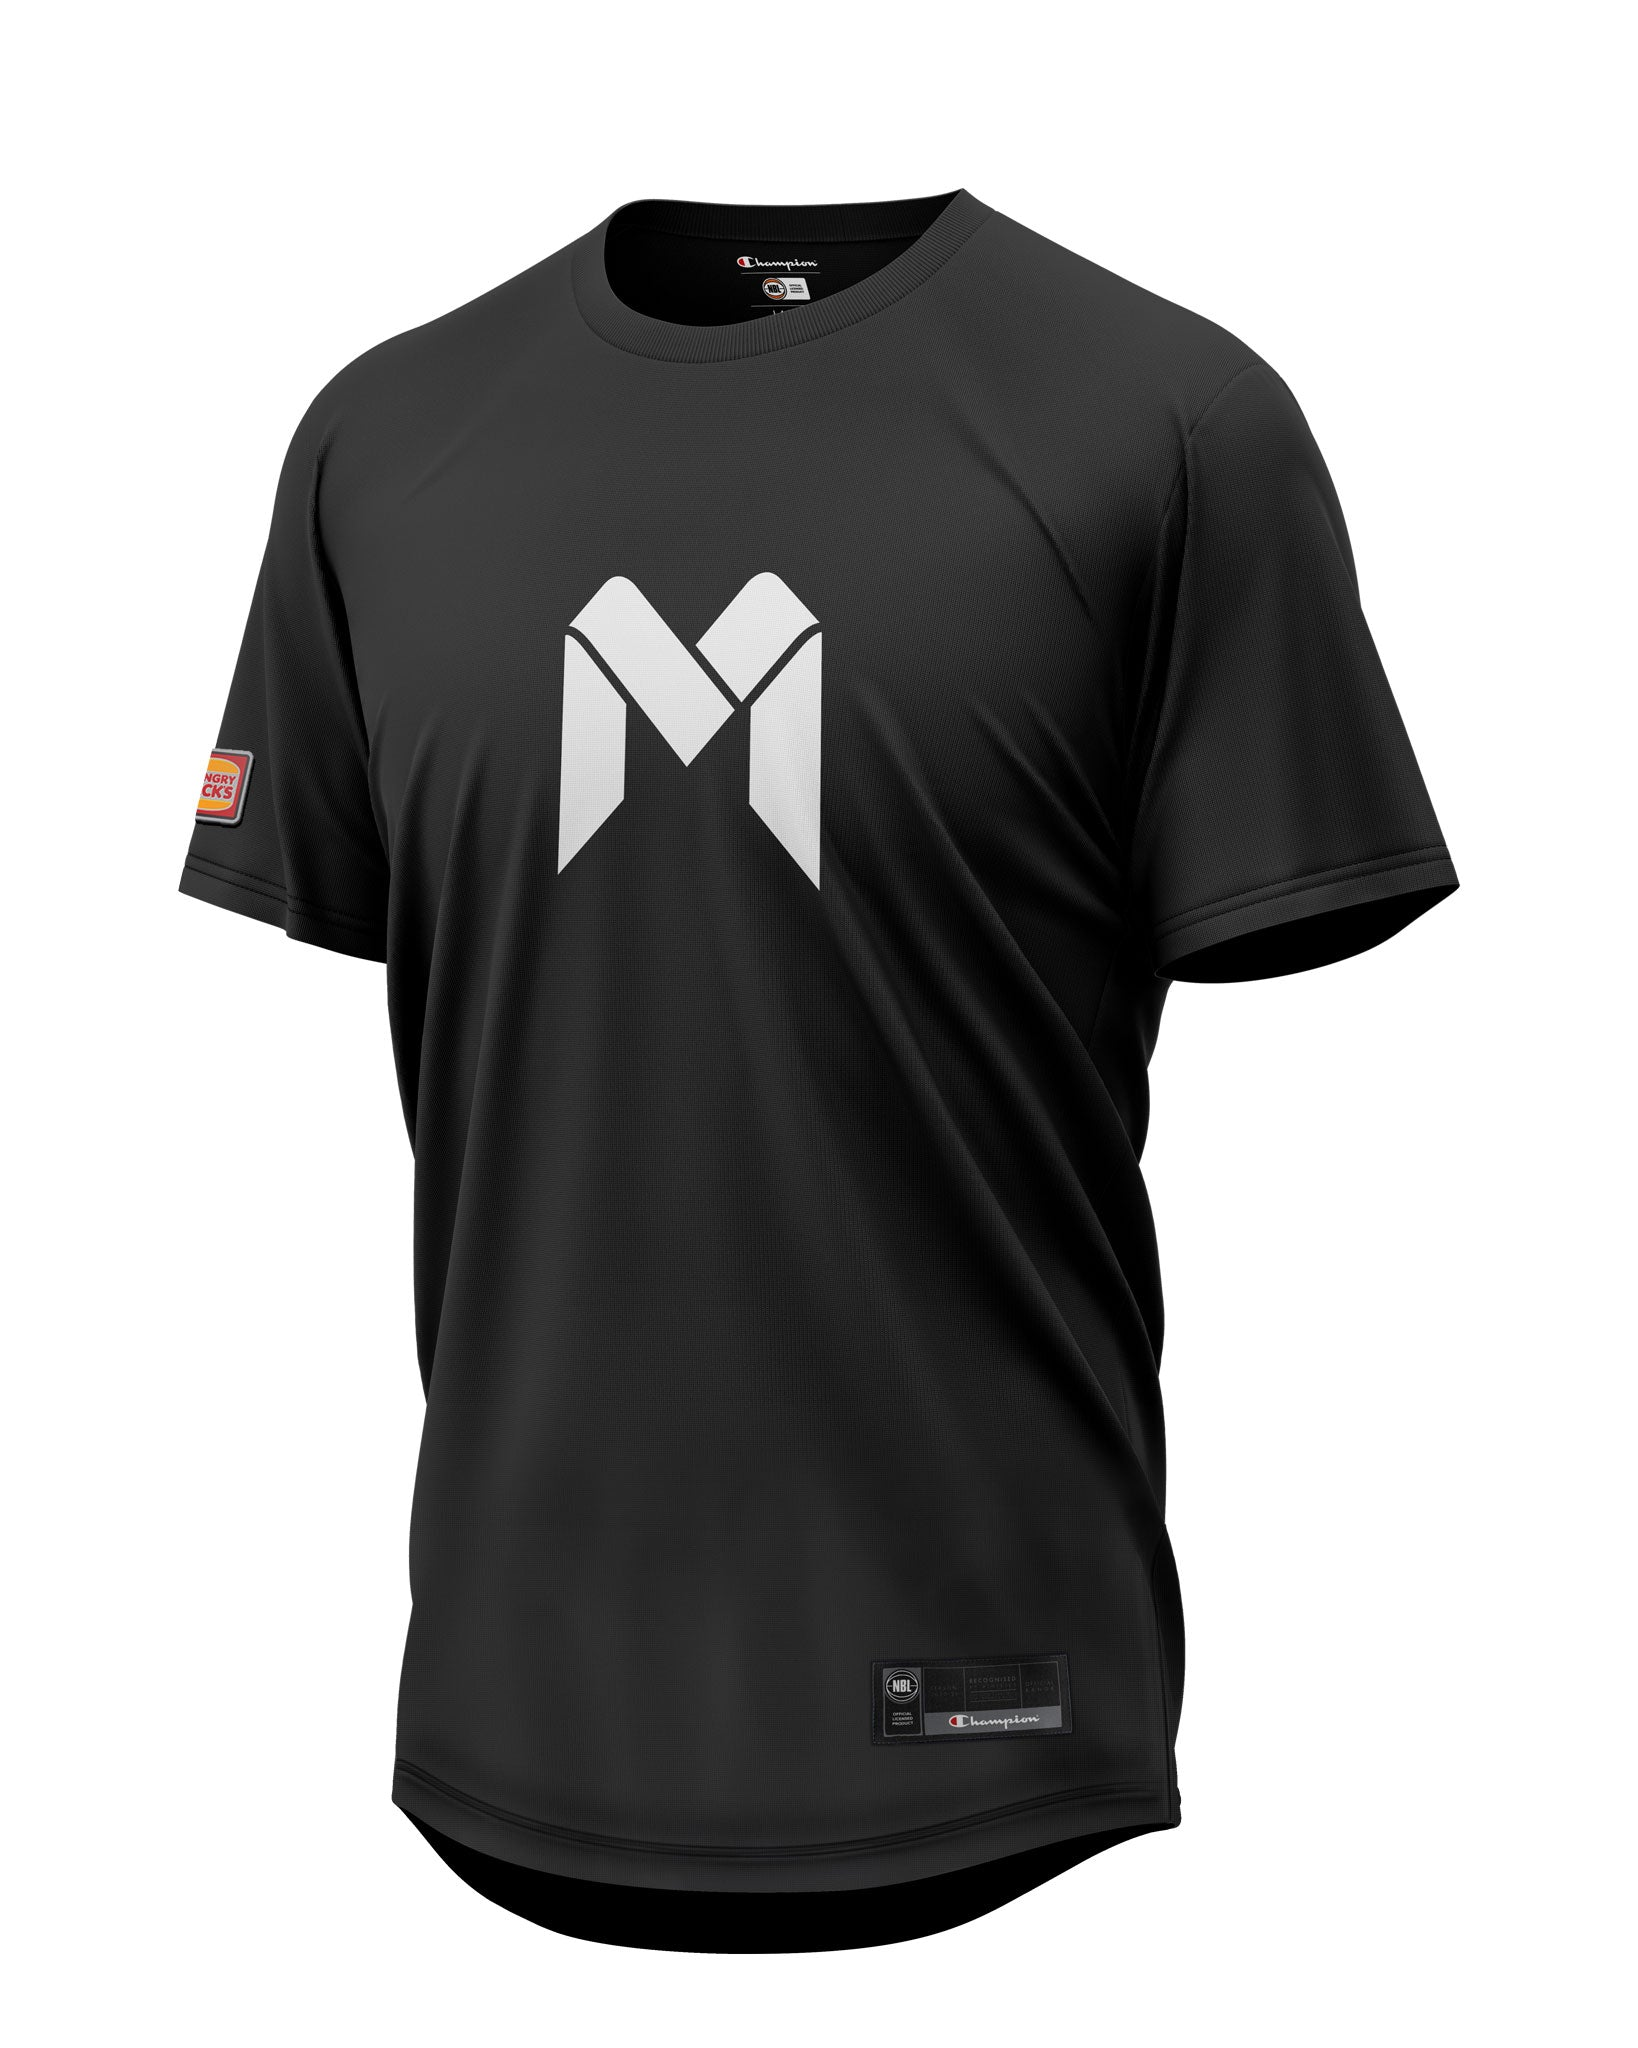 Melbourne United 20/21 Icon Lifestyle Tee